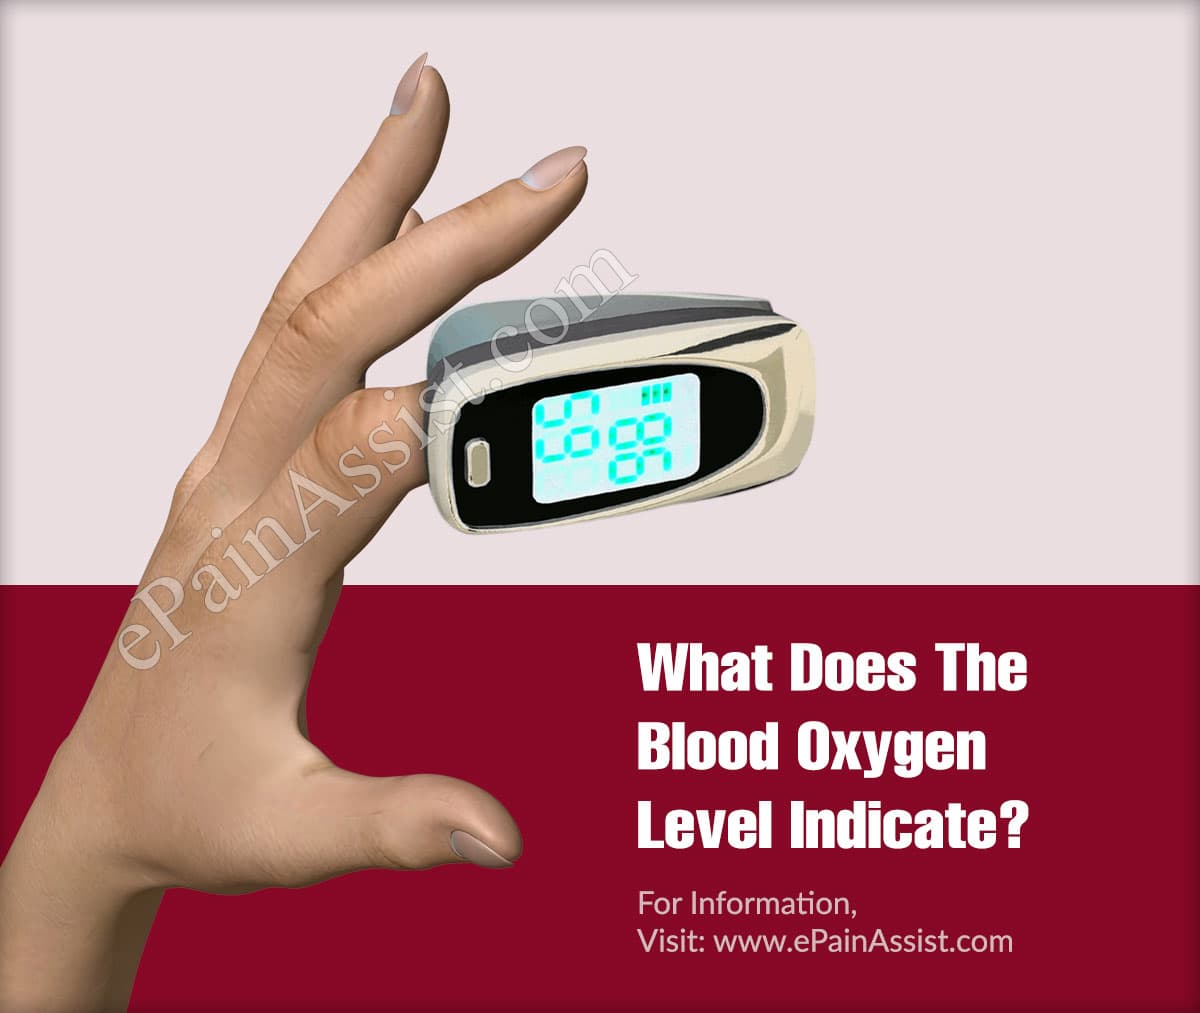 What Does The Blood Oxygen Level Indicate?